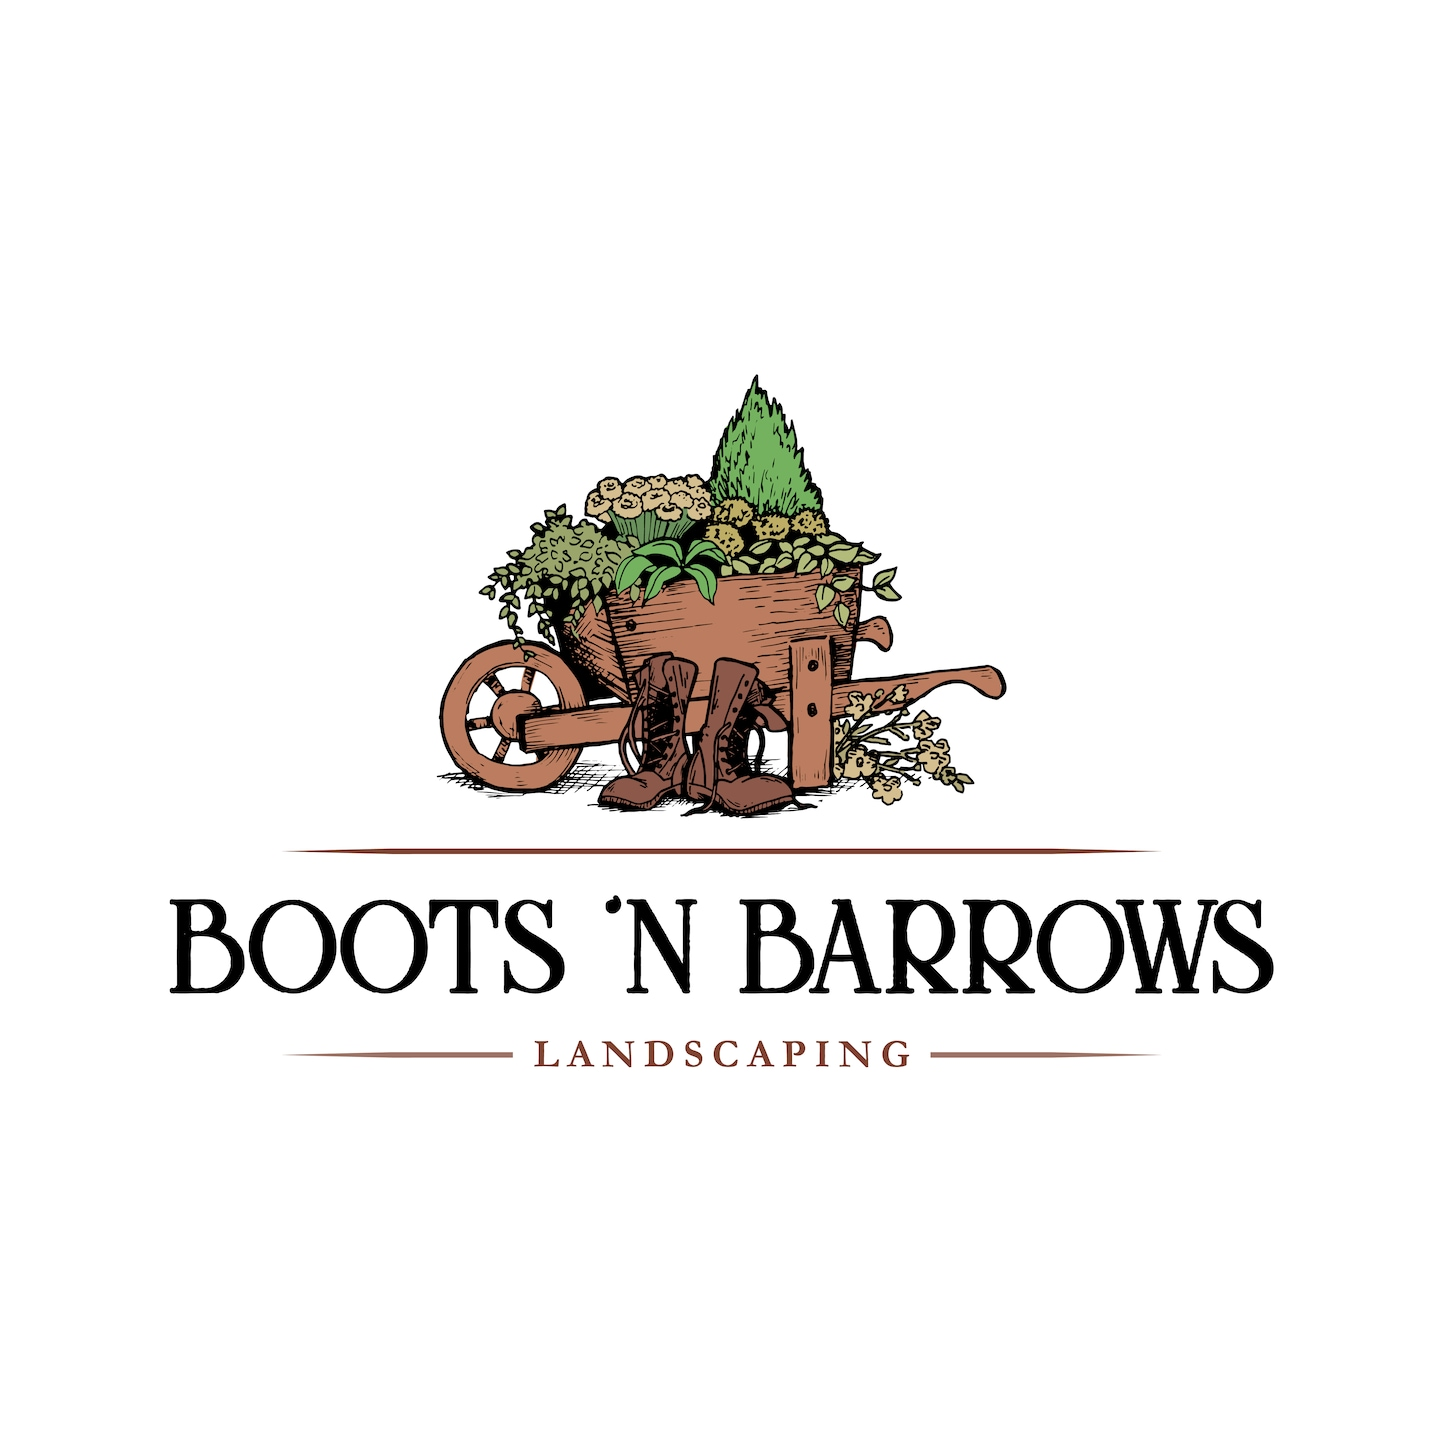 Boots 'n Barrows